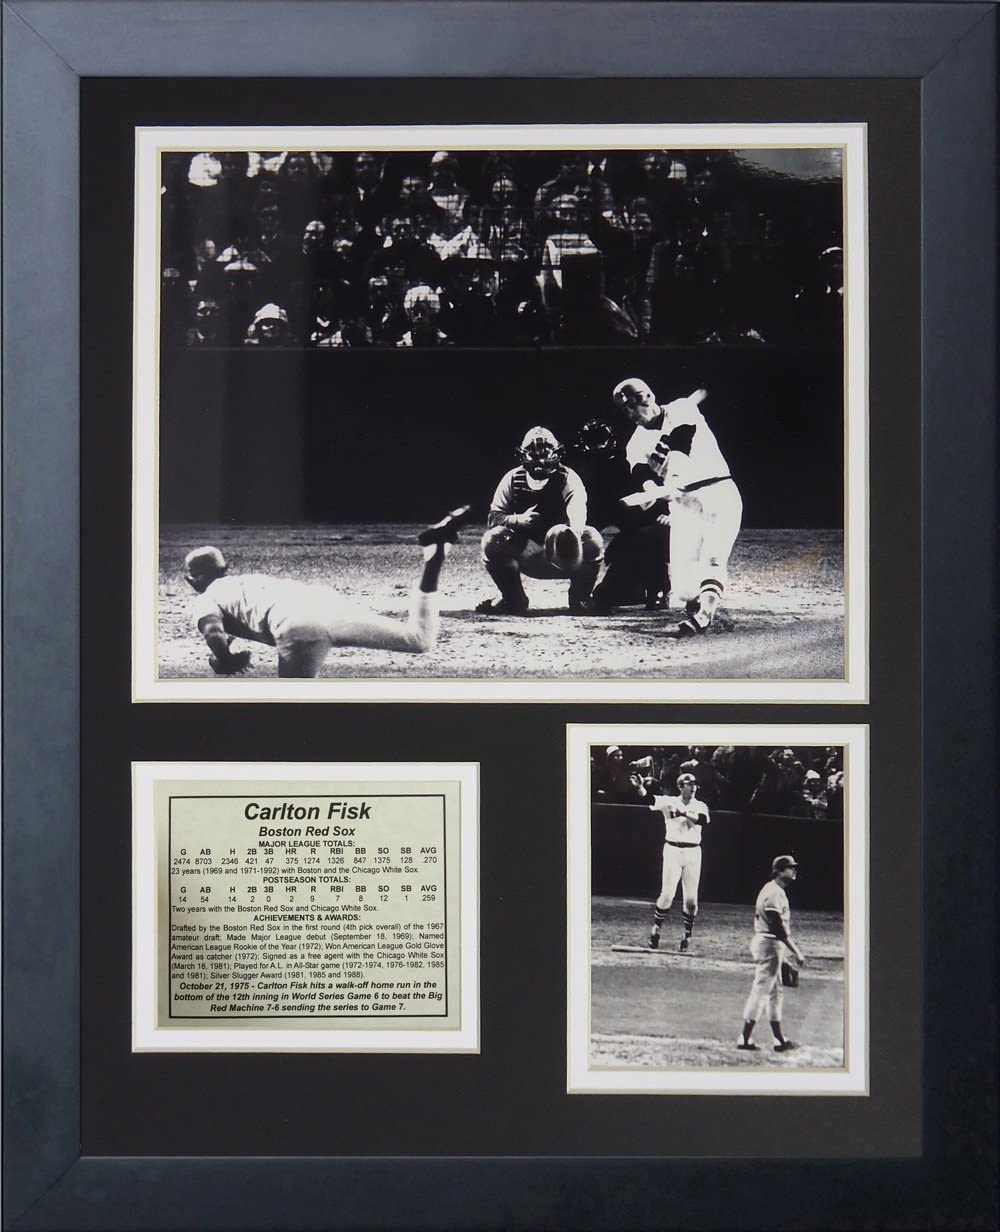 Legends Never Die 1975 Carlton Fisk Home Run Framed Photo Collage 11 x 14-Inch